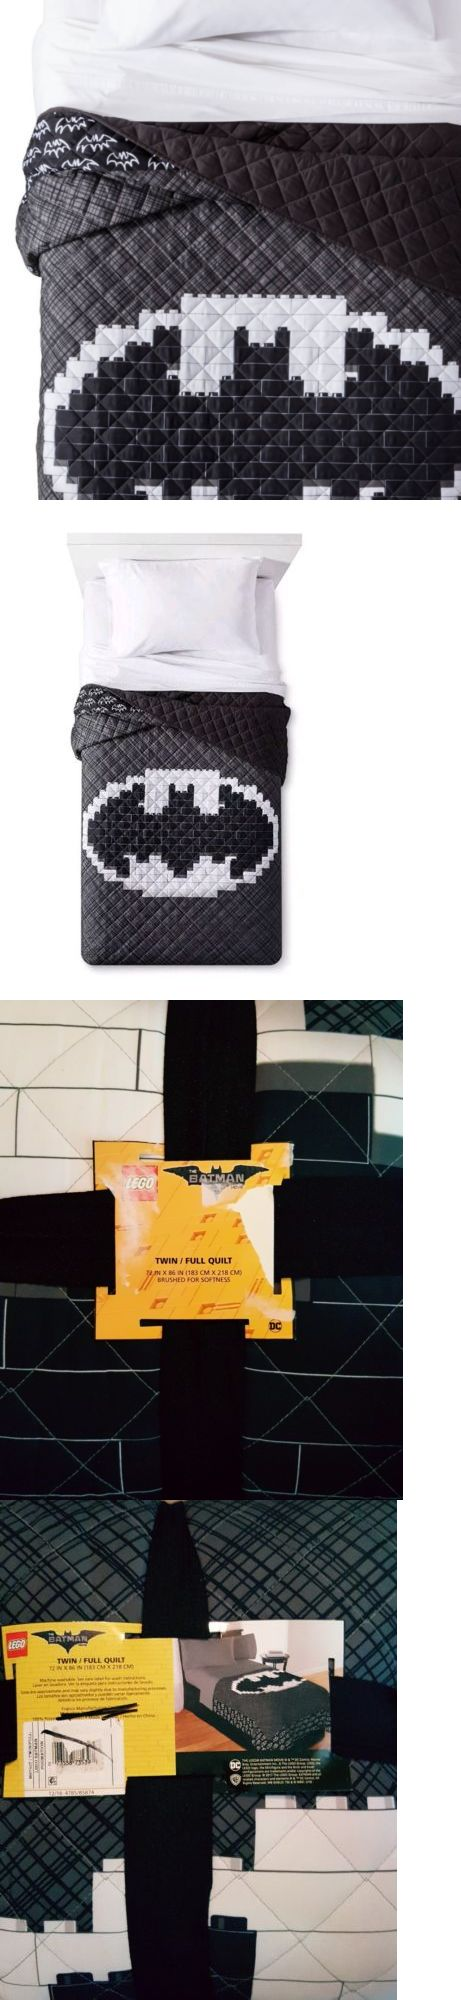 Quilts 66730: The Lego Batman Movie Quilt ~ Twin Full ~ Black Gray White Lego Bricks -> BUY IT NOW ONLY: $49.99 on eBay!